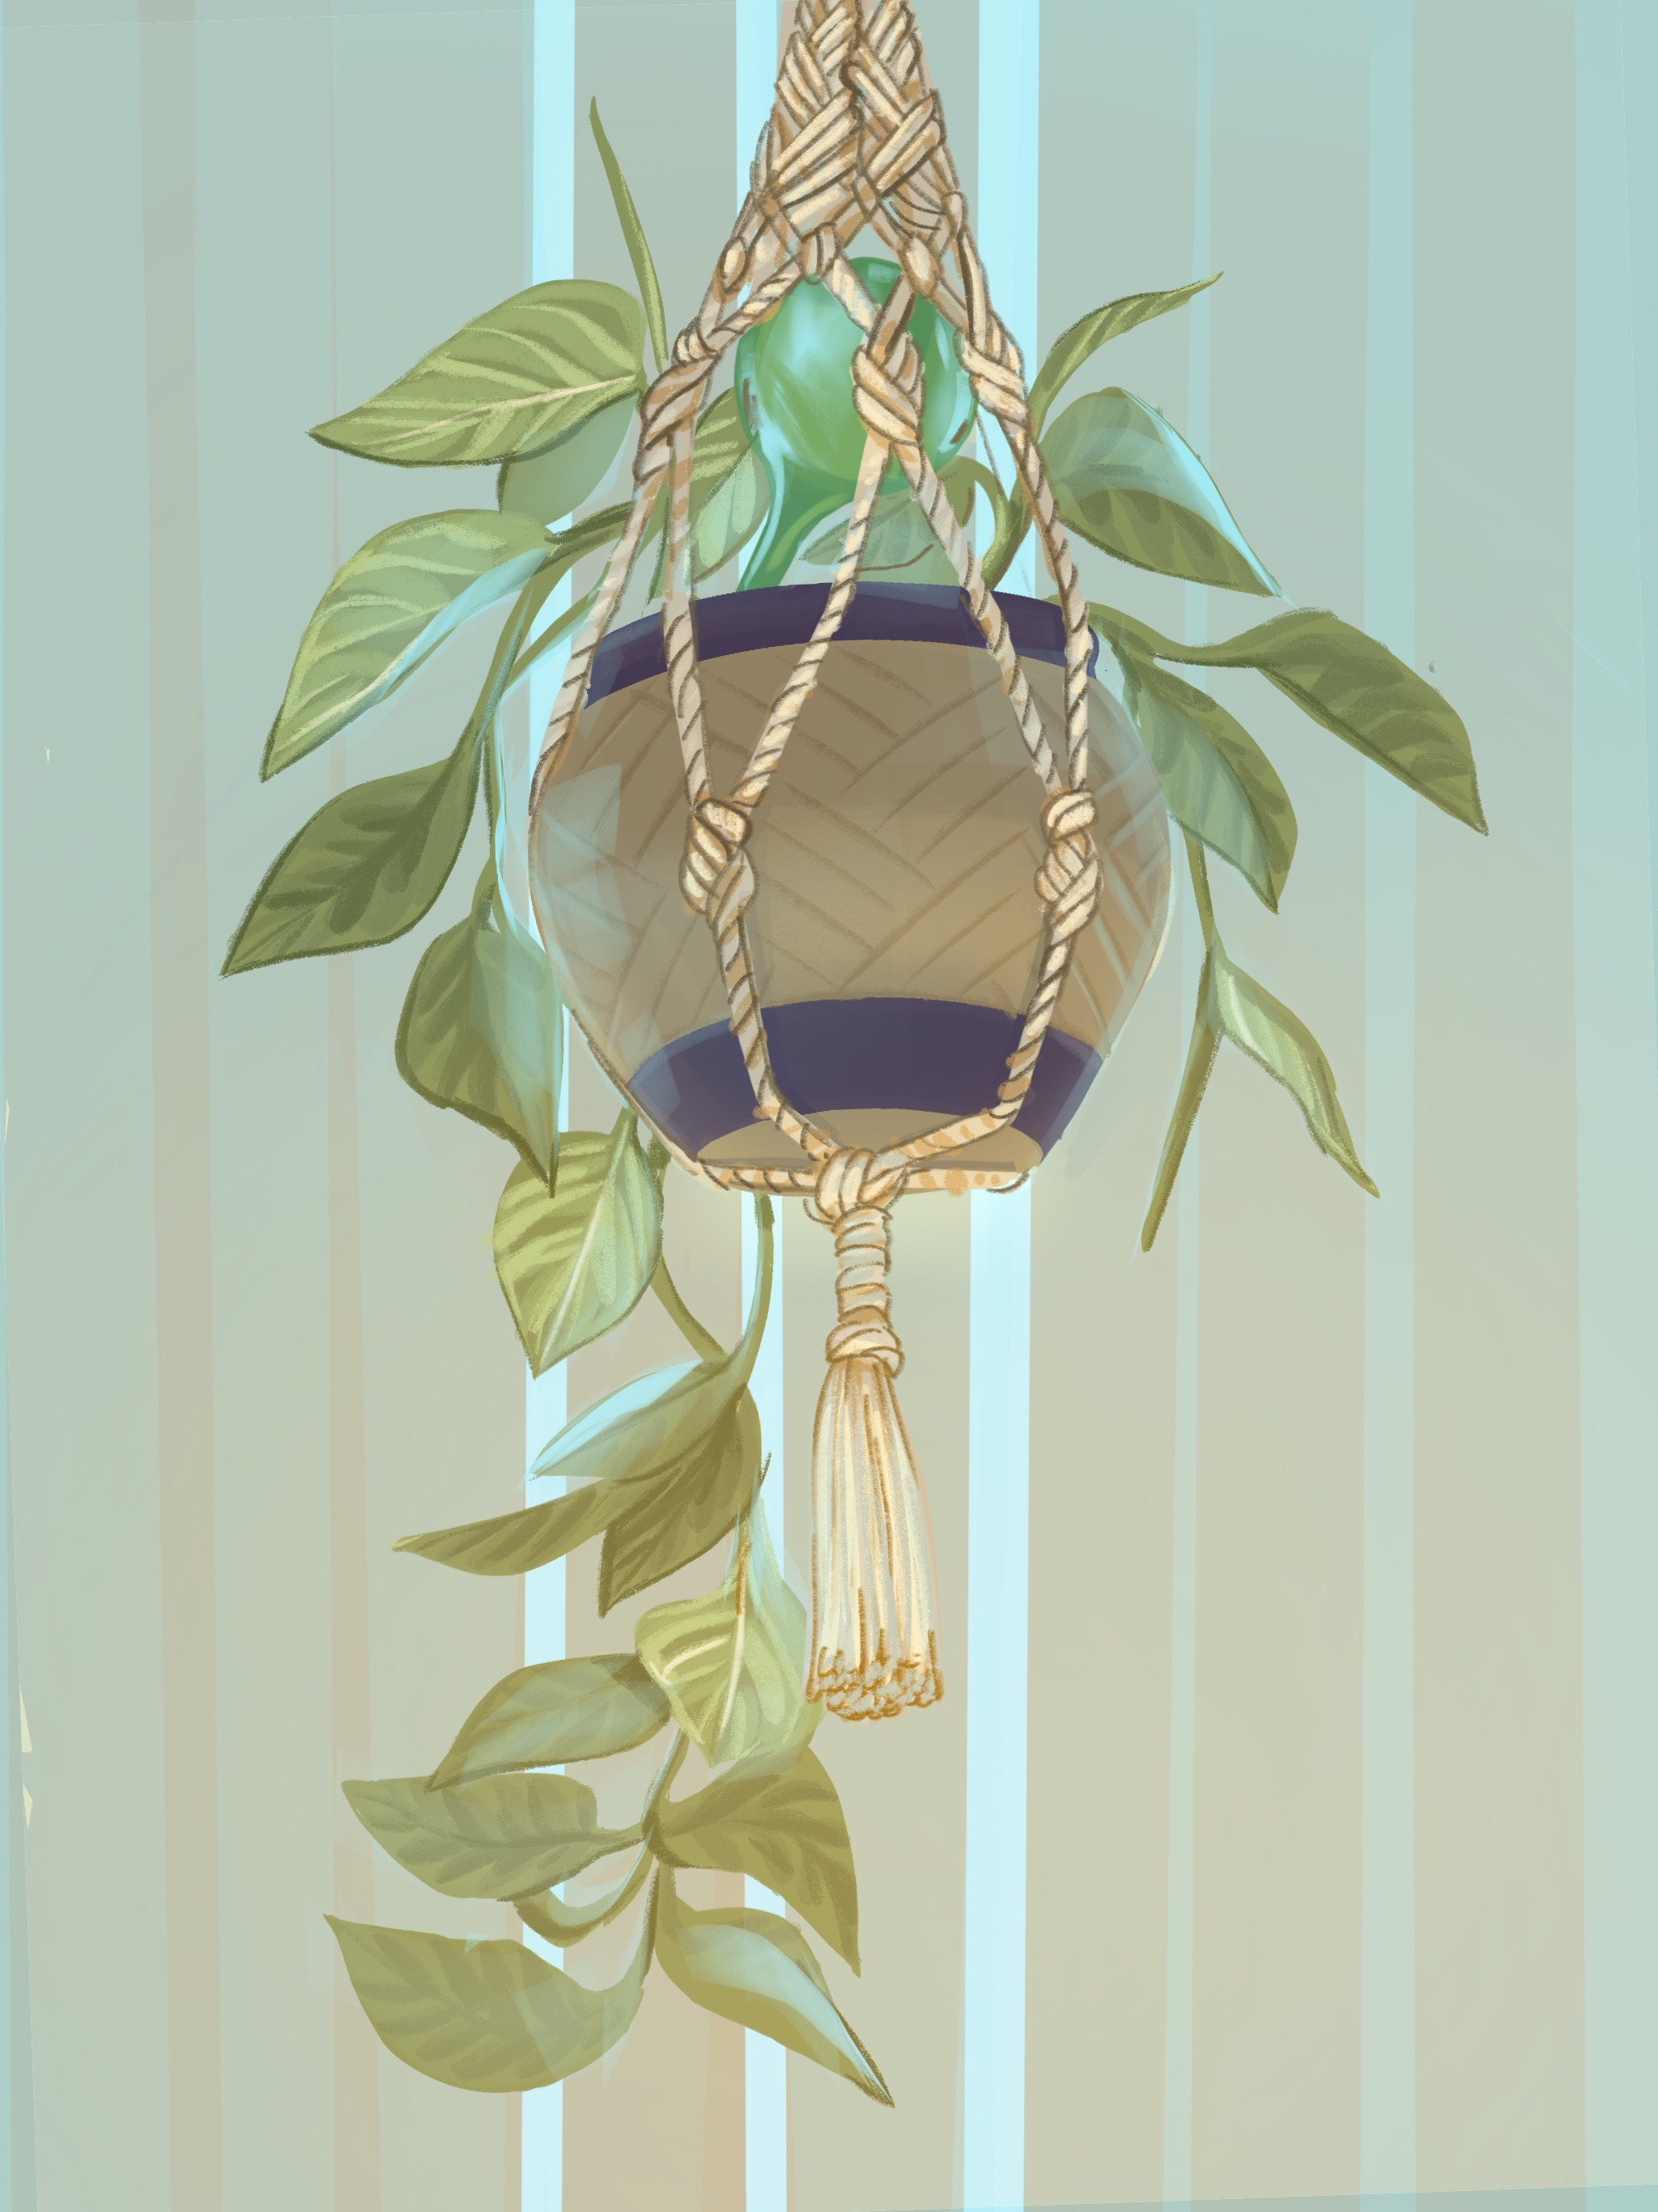 The drawing from my study. I did things like enlarge the leaves and cleaned up their shapes, drew through a little more, to add dimension, and messed with the color/lighting a little bit